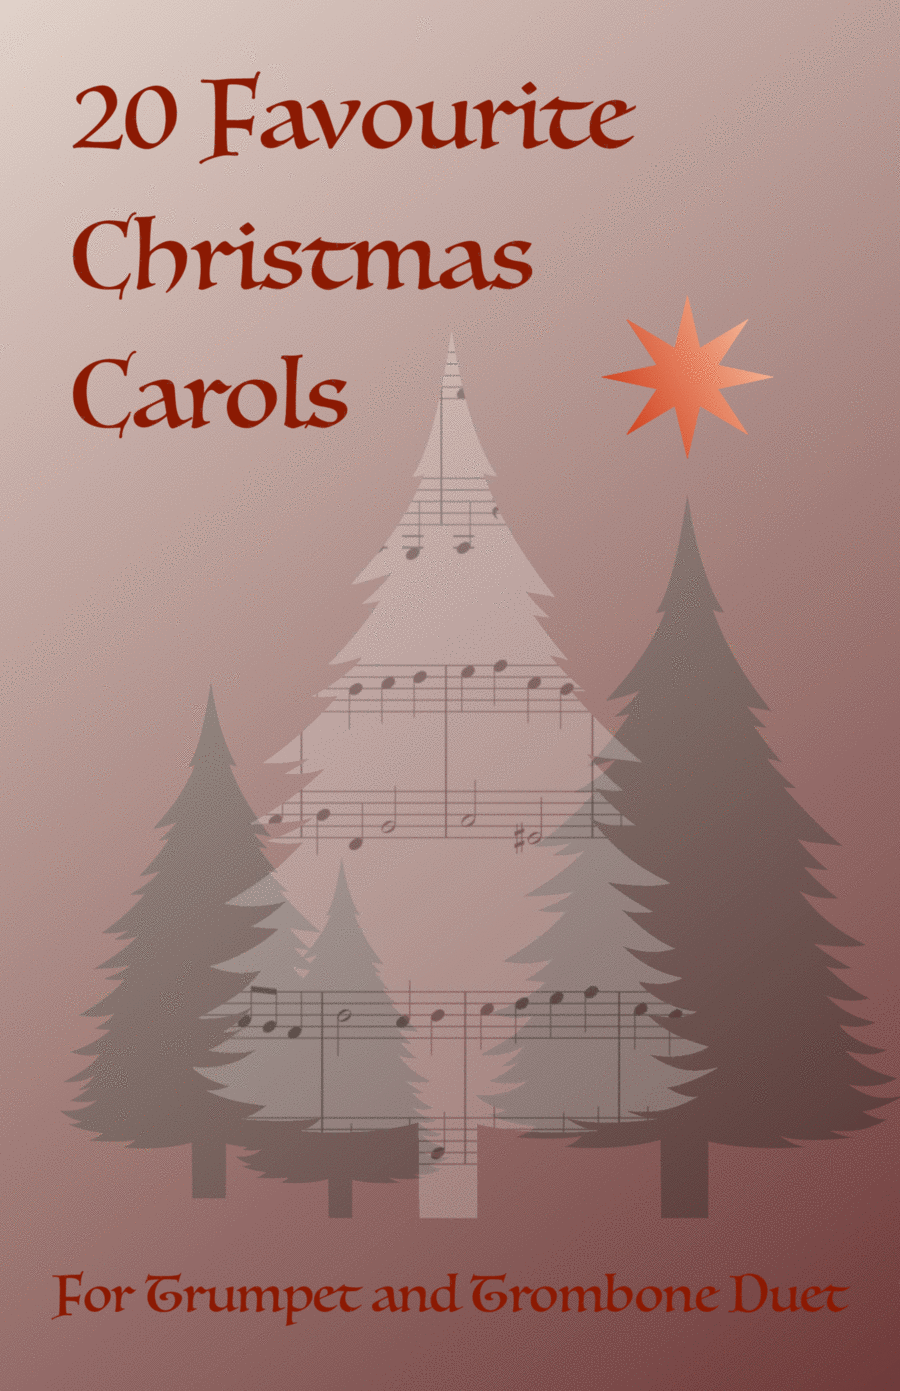 20 Favourite Christmas Carols for Trumpet and Trombone Duet